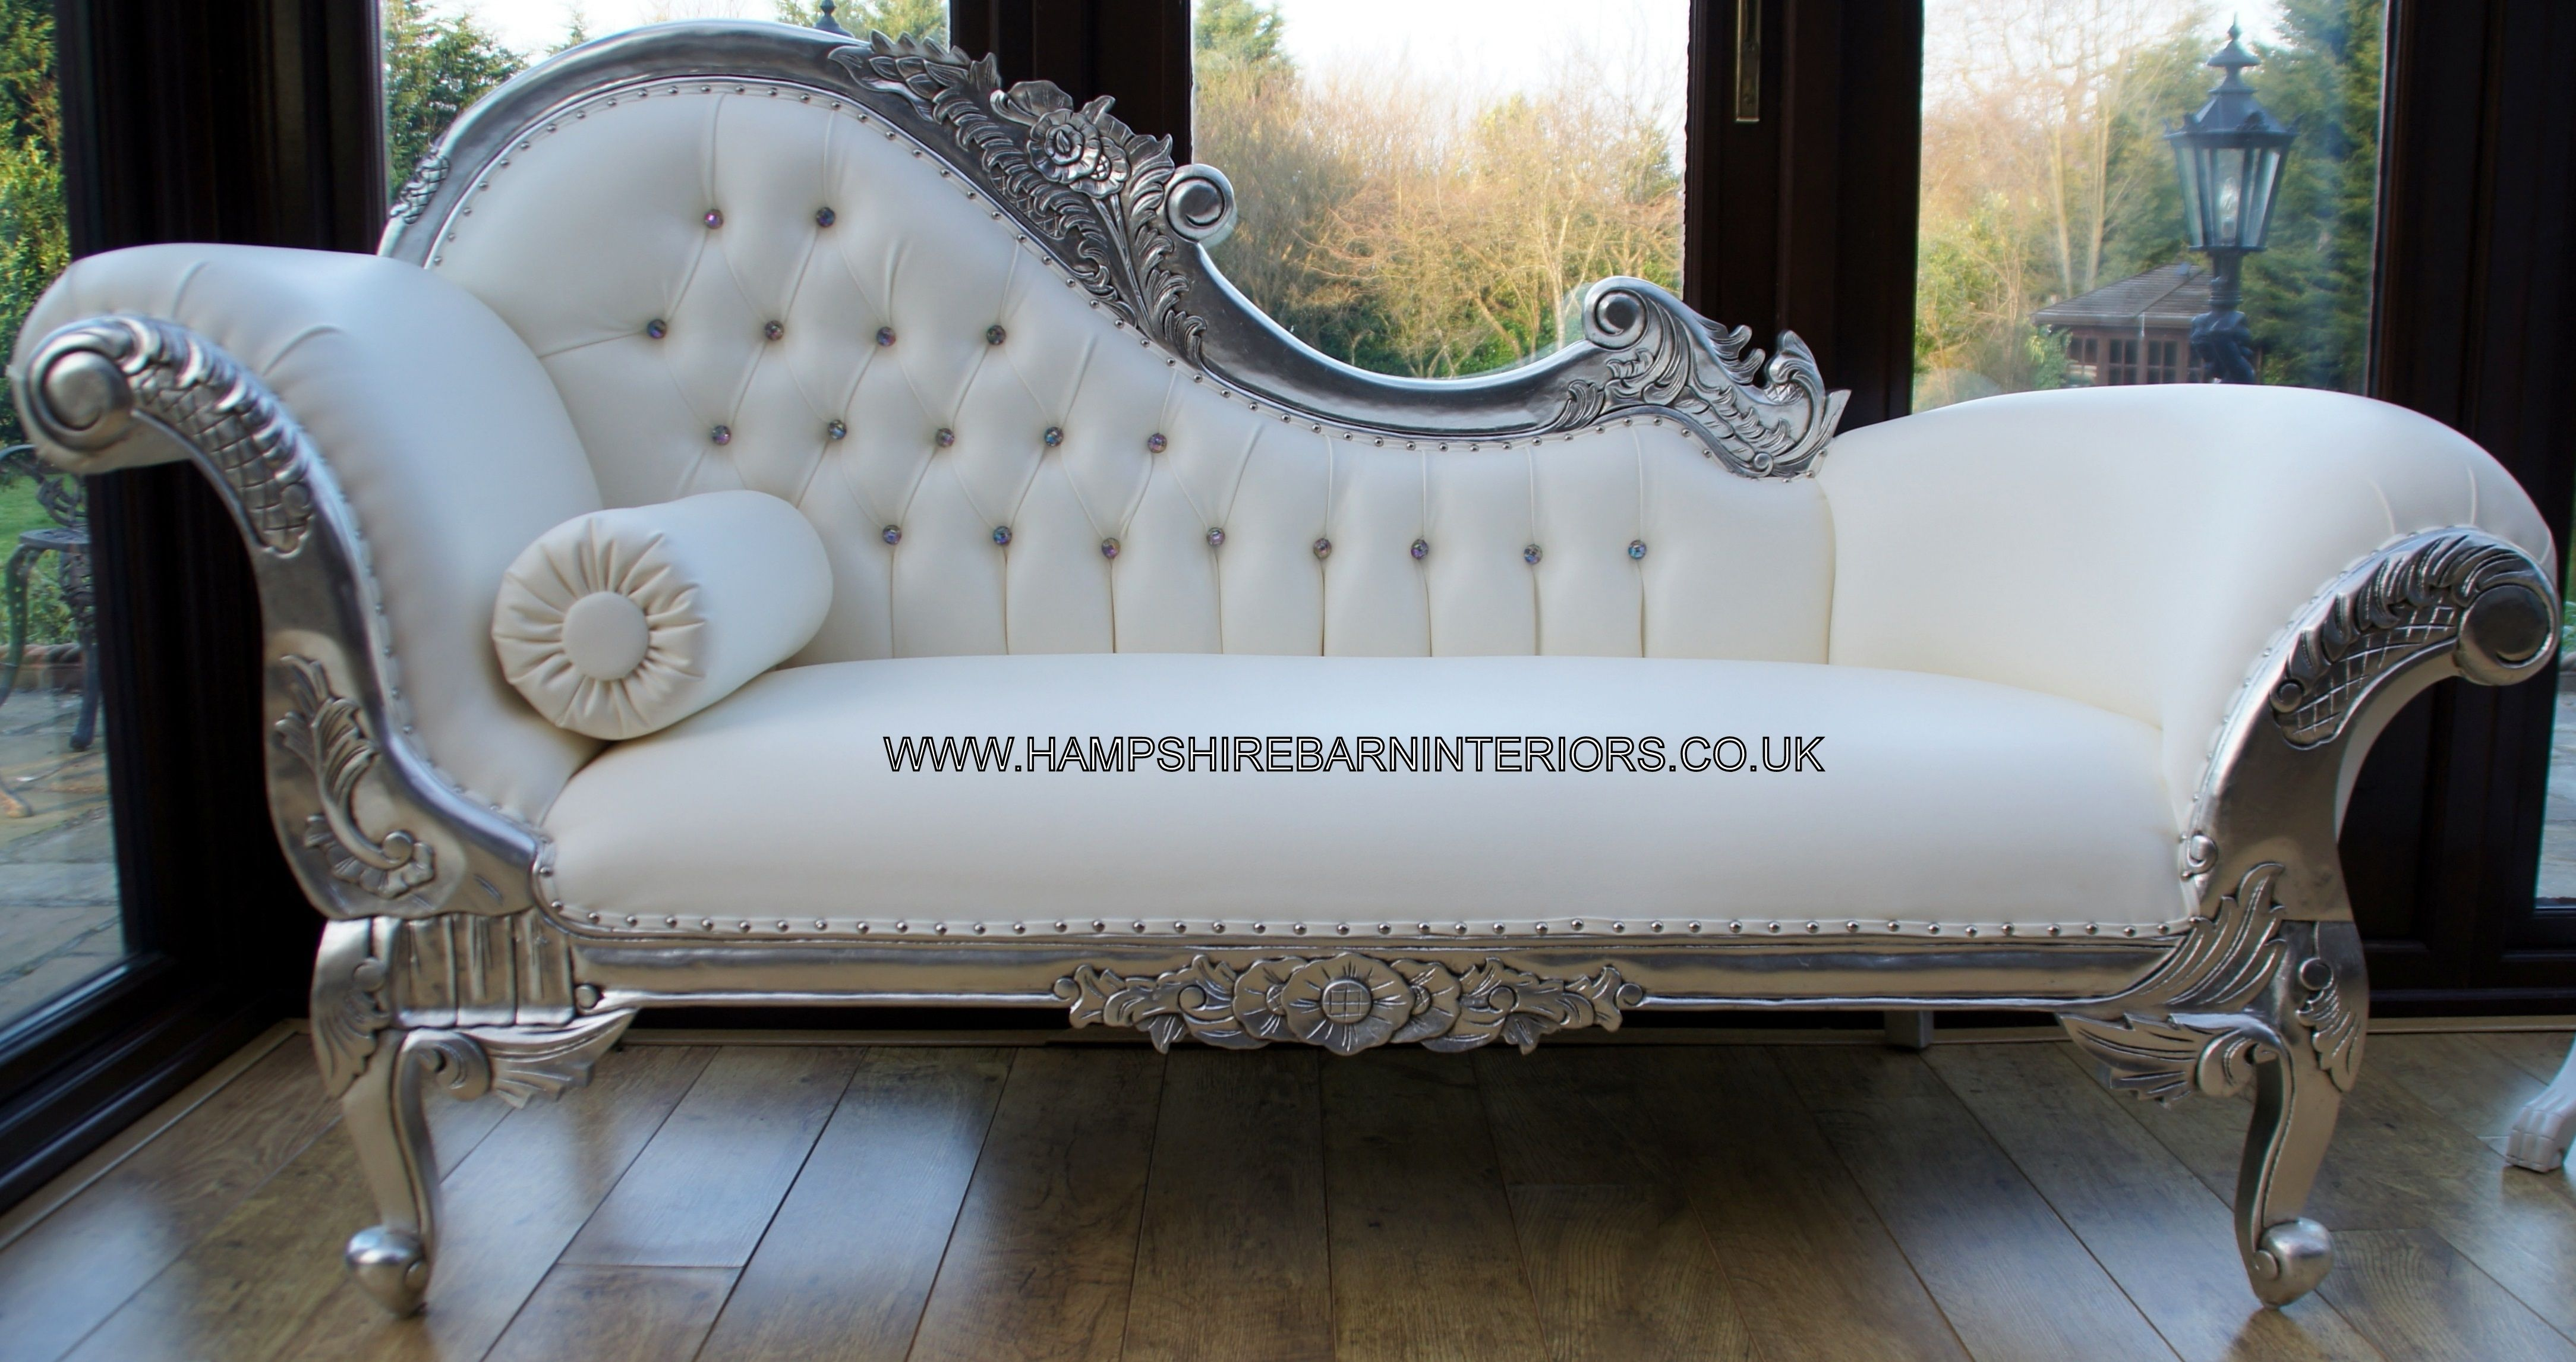 White Leather Chaise Lounge Chairs : white leather chaise lounge chair - Cheerinfomania.Com